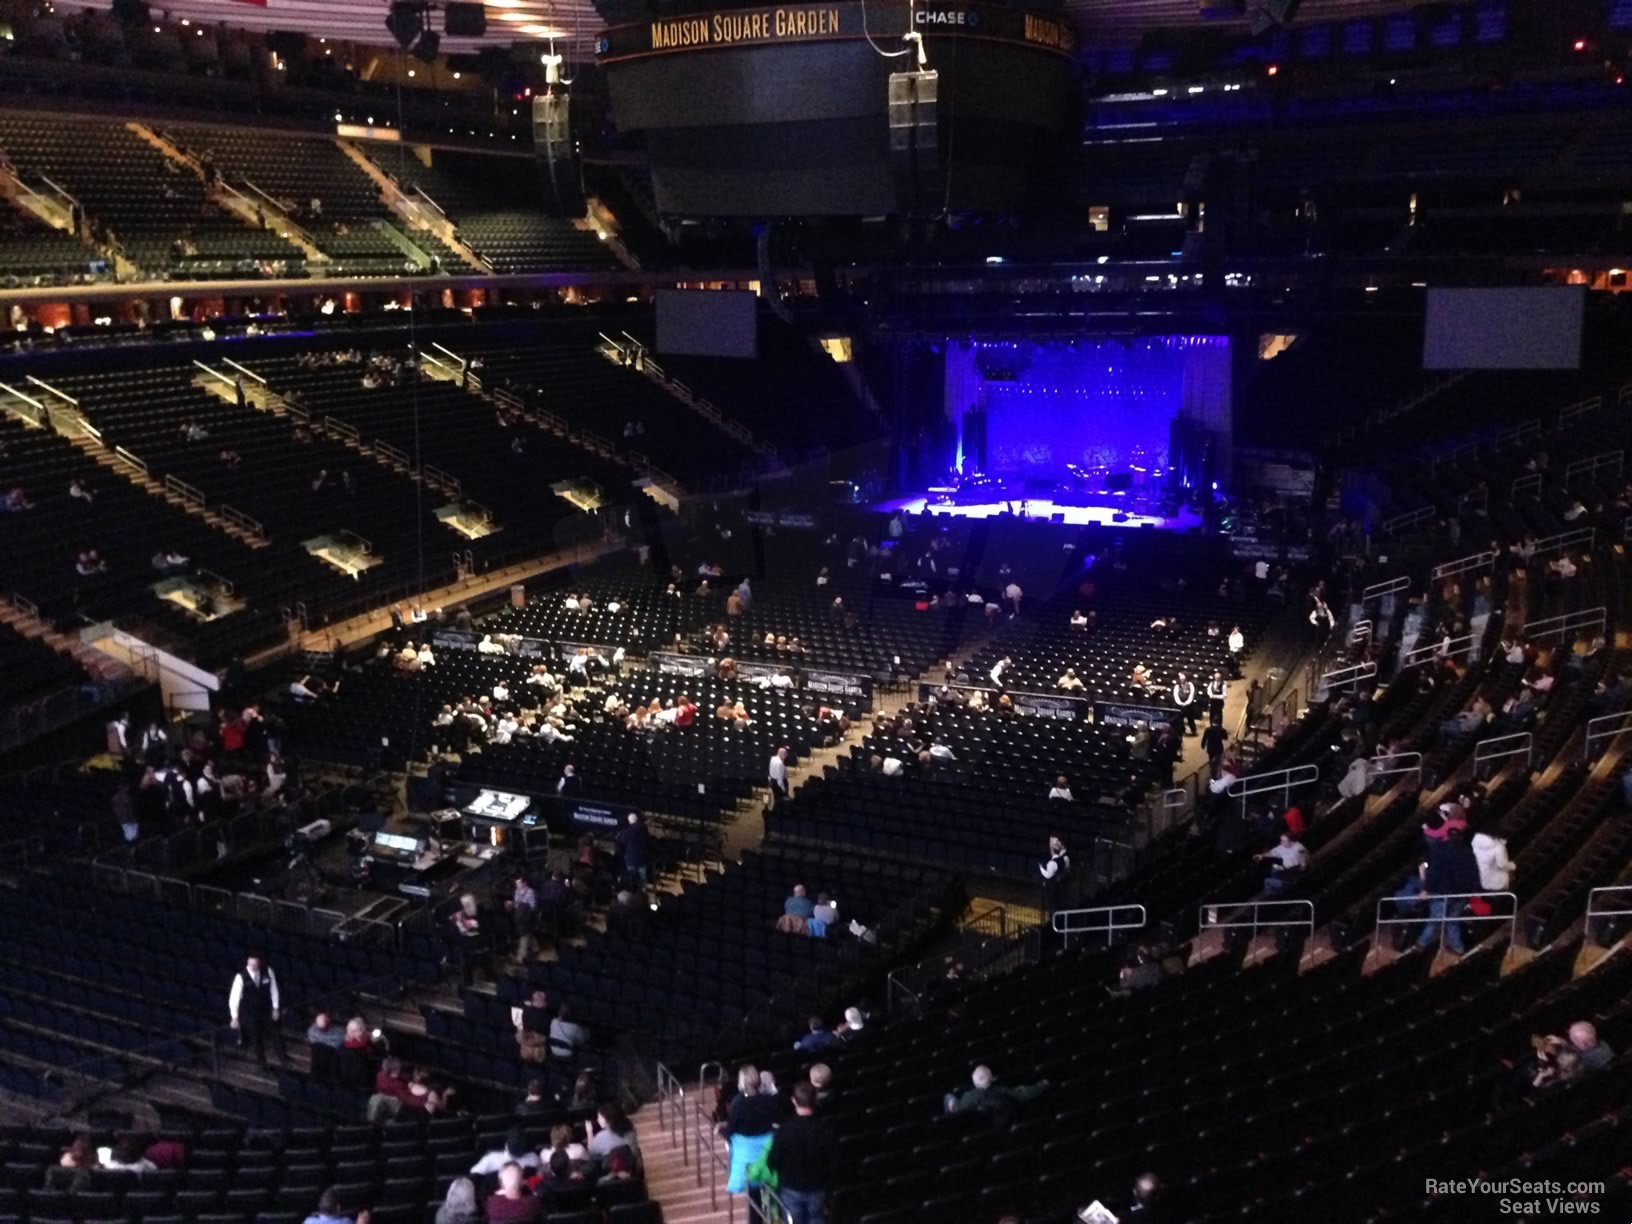 Madison Square Garden Section 206 Concert Seating